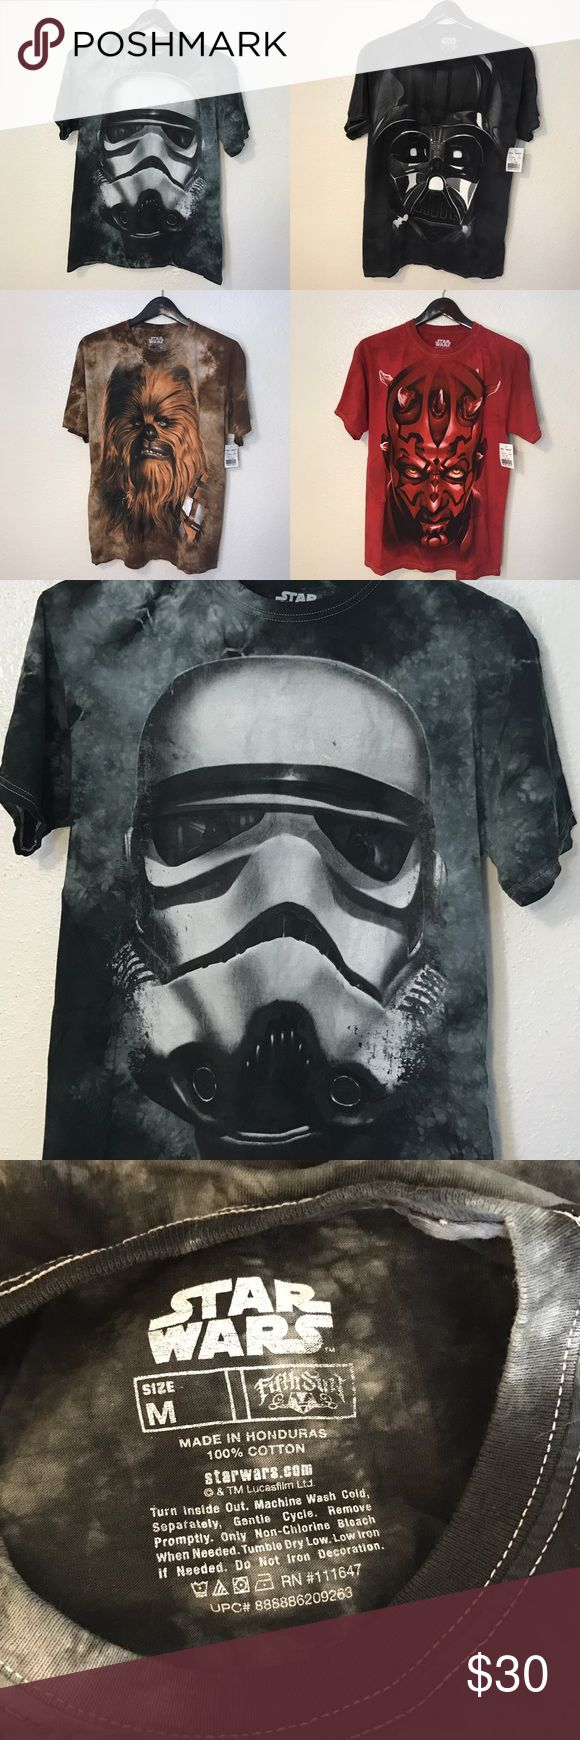 Brand New ⭐️ Star Wars T-Shirt 4 Pack Bundle Sz M Four Star Wars T-Shirts (3/4 still are Brand New with Tags) characters include a Storm Trooper (size Medium in perfect condition), Darth Vader (size Medium NWT), Chewbacca (size Large NWT), & Darth Maul (size Medium NWT) They all fit the same & can even be unisex. These are all pretty awesome looking for the real Star Wars fans!! Prices are not firm, offers always welcome 😁 Star Wars Shirts Tees - Short Sleeve